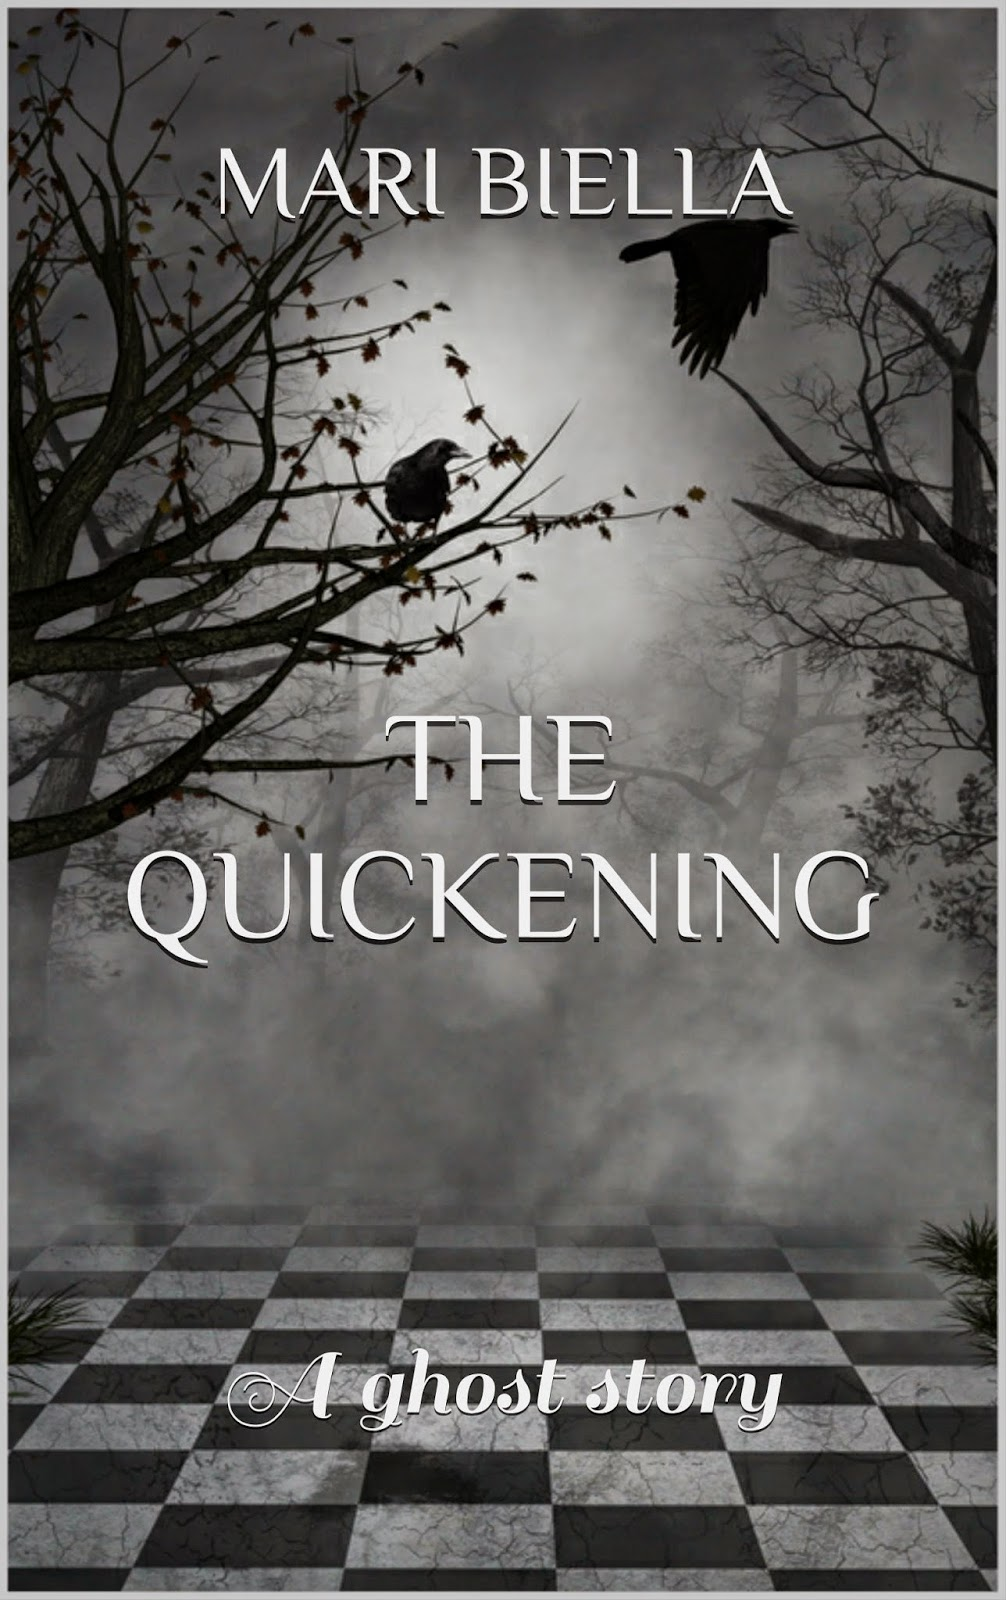 http://www.amazon.co.uk/Quickening-Ghost-Story-Mari-Biella-ebook/dp/B007TIPVGO/ref=sr_1_3?s=digital-text&ie=UTF8&qid=1417448149&sr=1-3&keywords=the+quickening